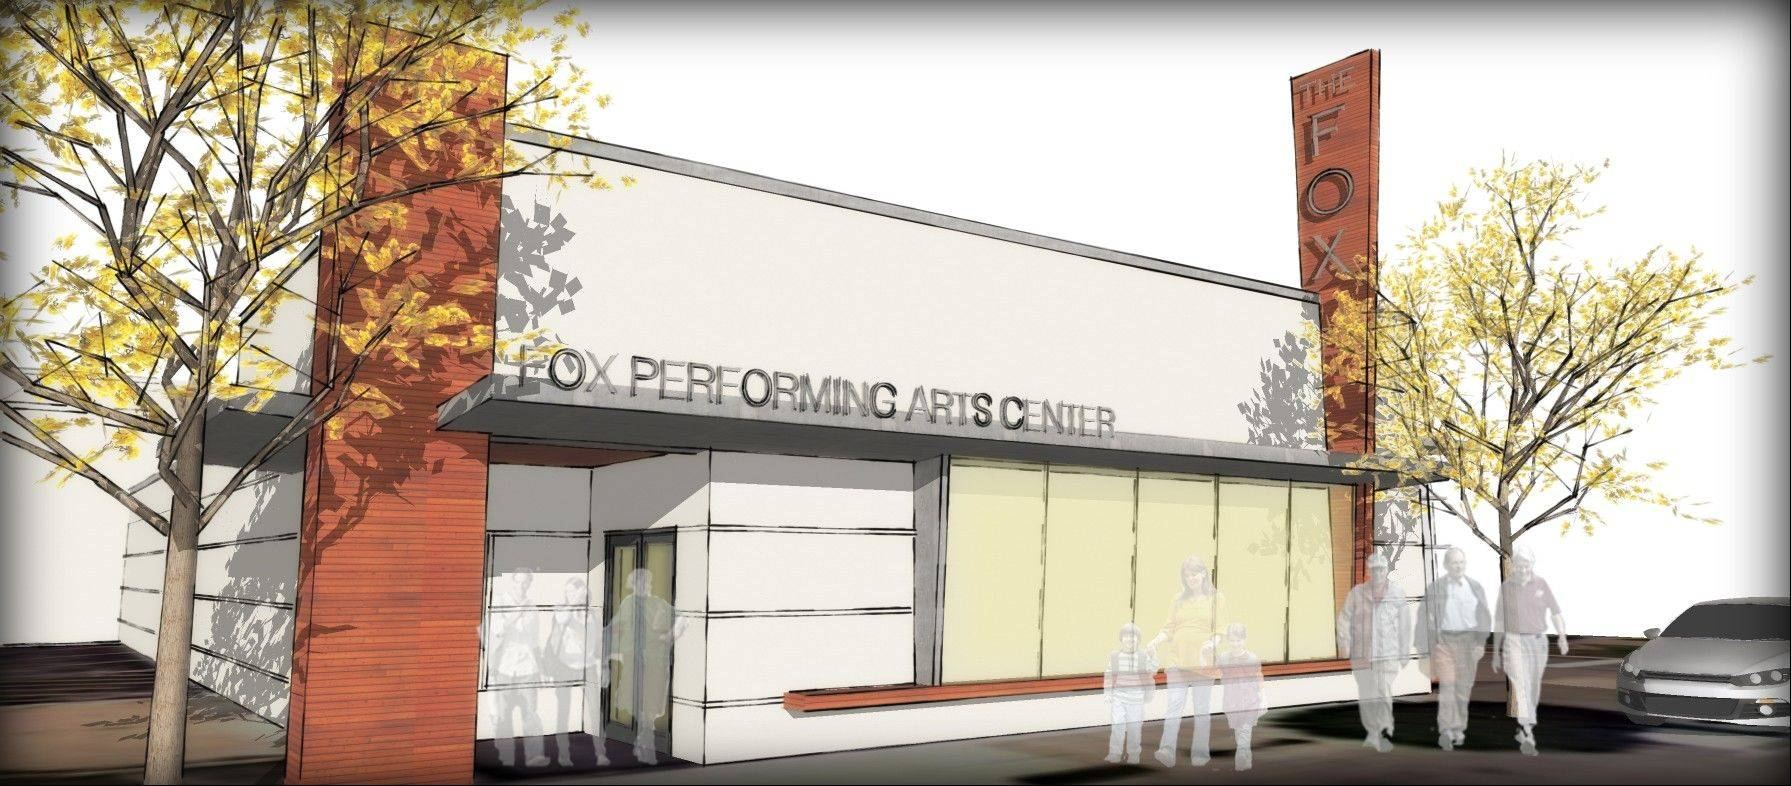 The proposed Fox Performing Arts Center is in danger of not becoming a reality. Fundraising has fallen far short of the $500,000 that West Dundee leaders requested of the man proposing to redevelop the former Zeigler's Ace Hardware store.